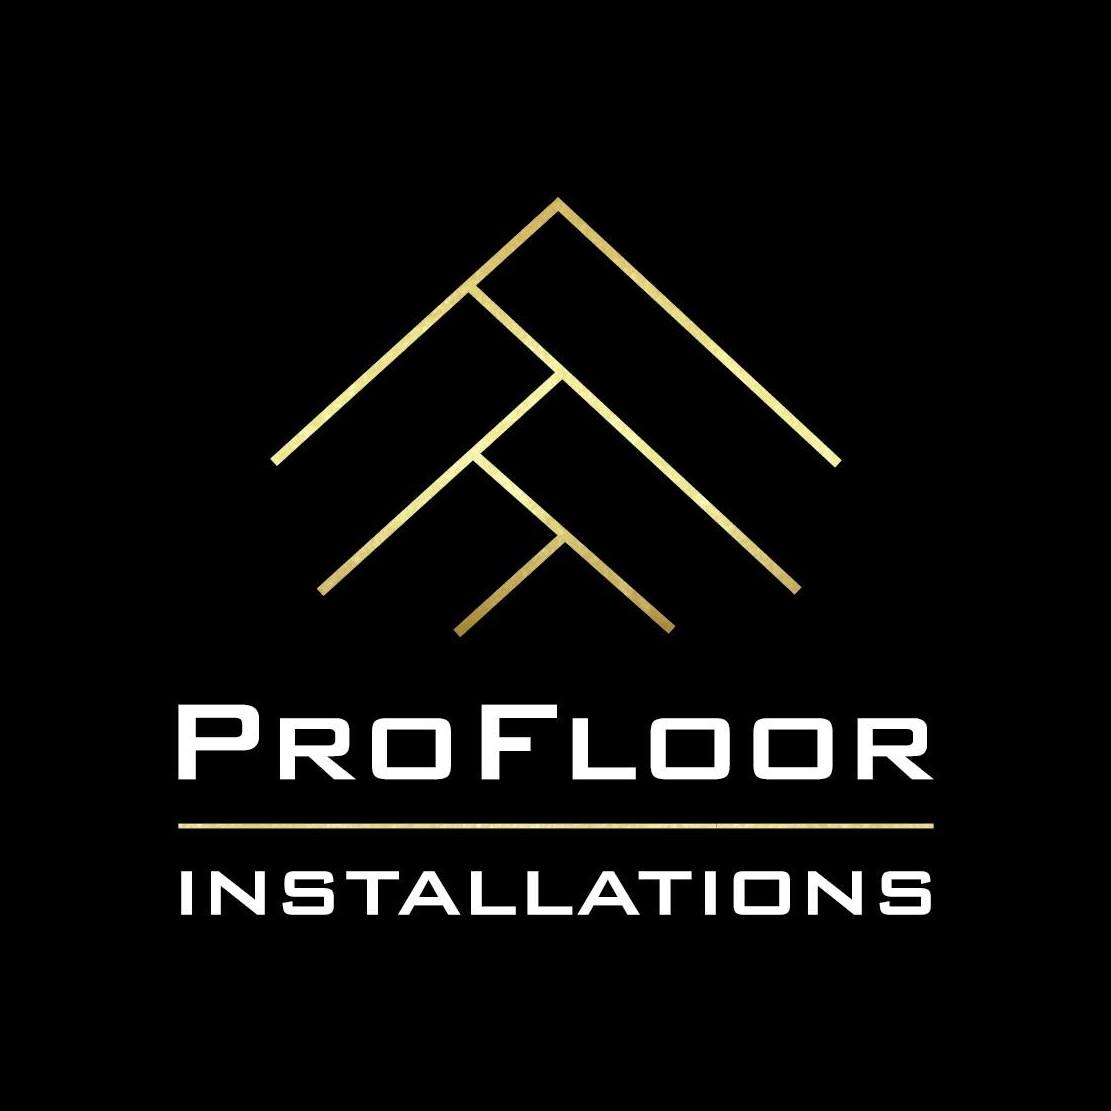 official business logo of ProFloor Installations